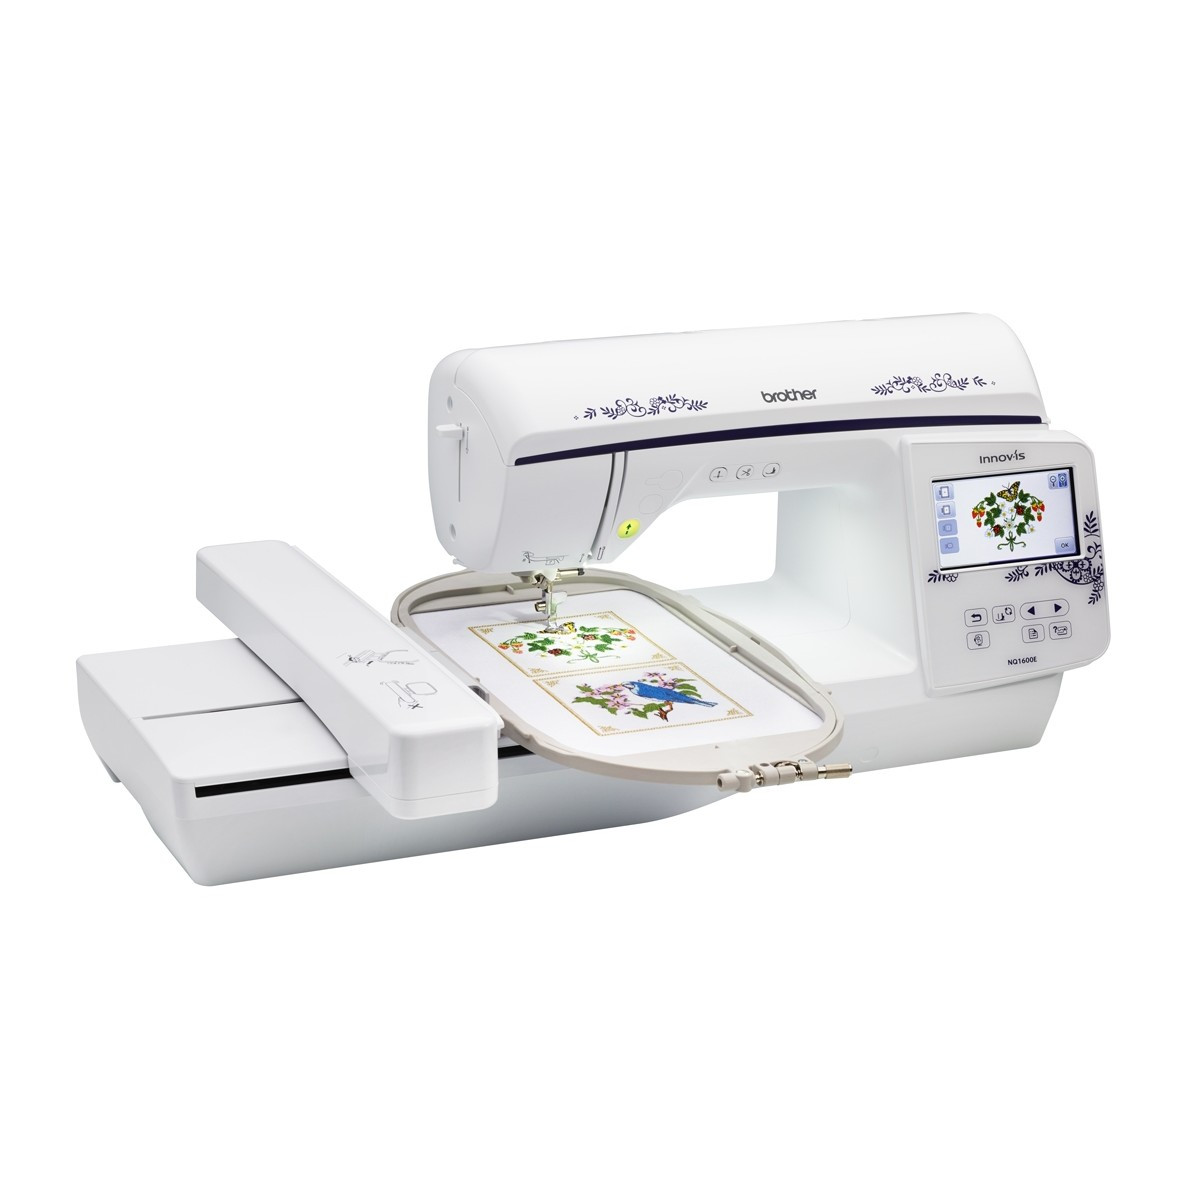 Embroidery Machine Awesome Brother Innov is Nq1600e Embroidery Machine Of Innovative 43 Pictures Embroidery Machine